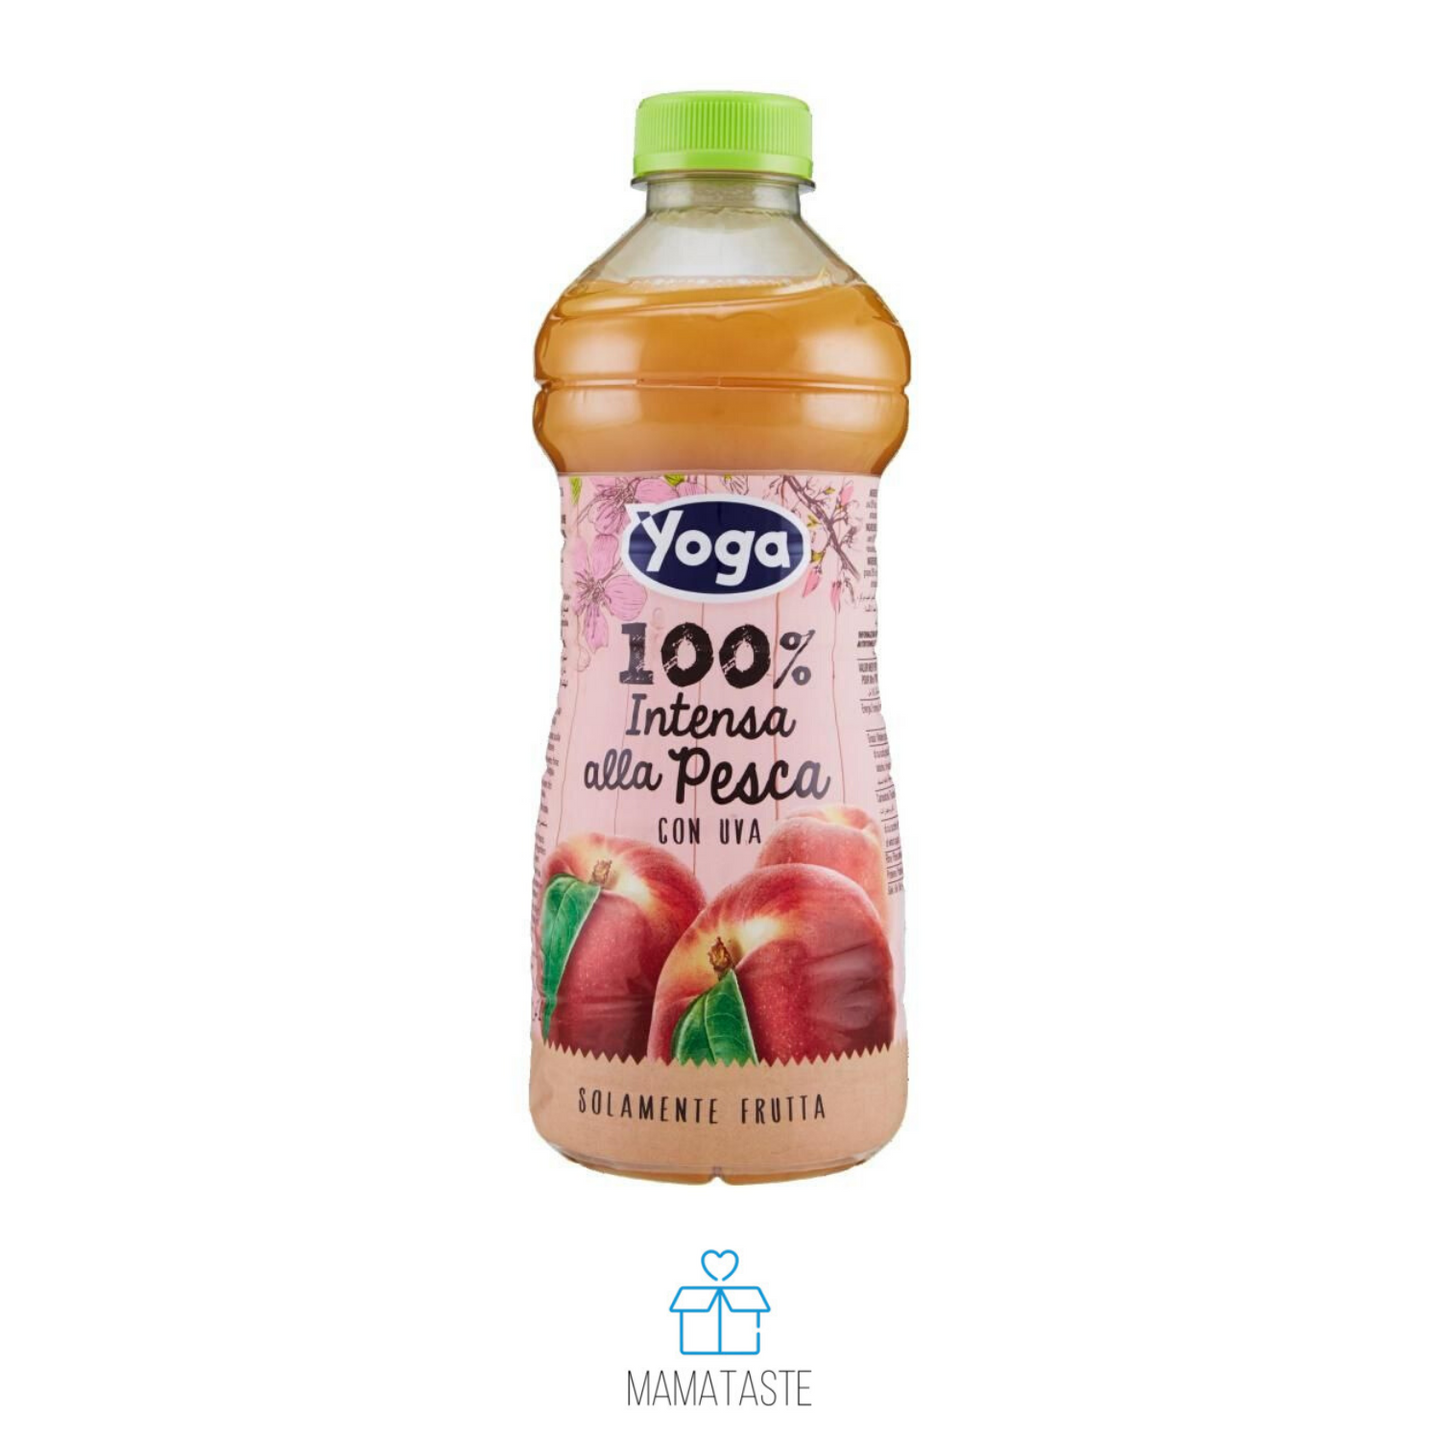 YOGA 100% INTENSA ALLA PESCA CON UVA 1000 ML